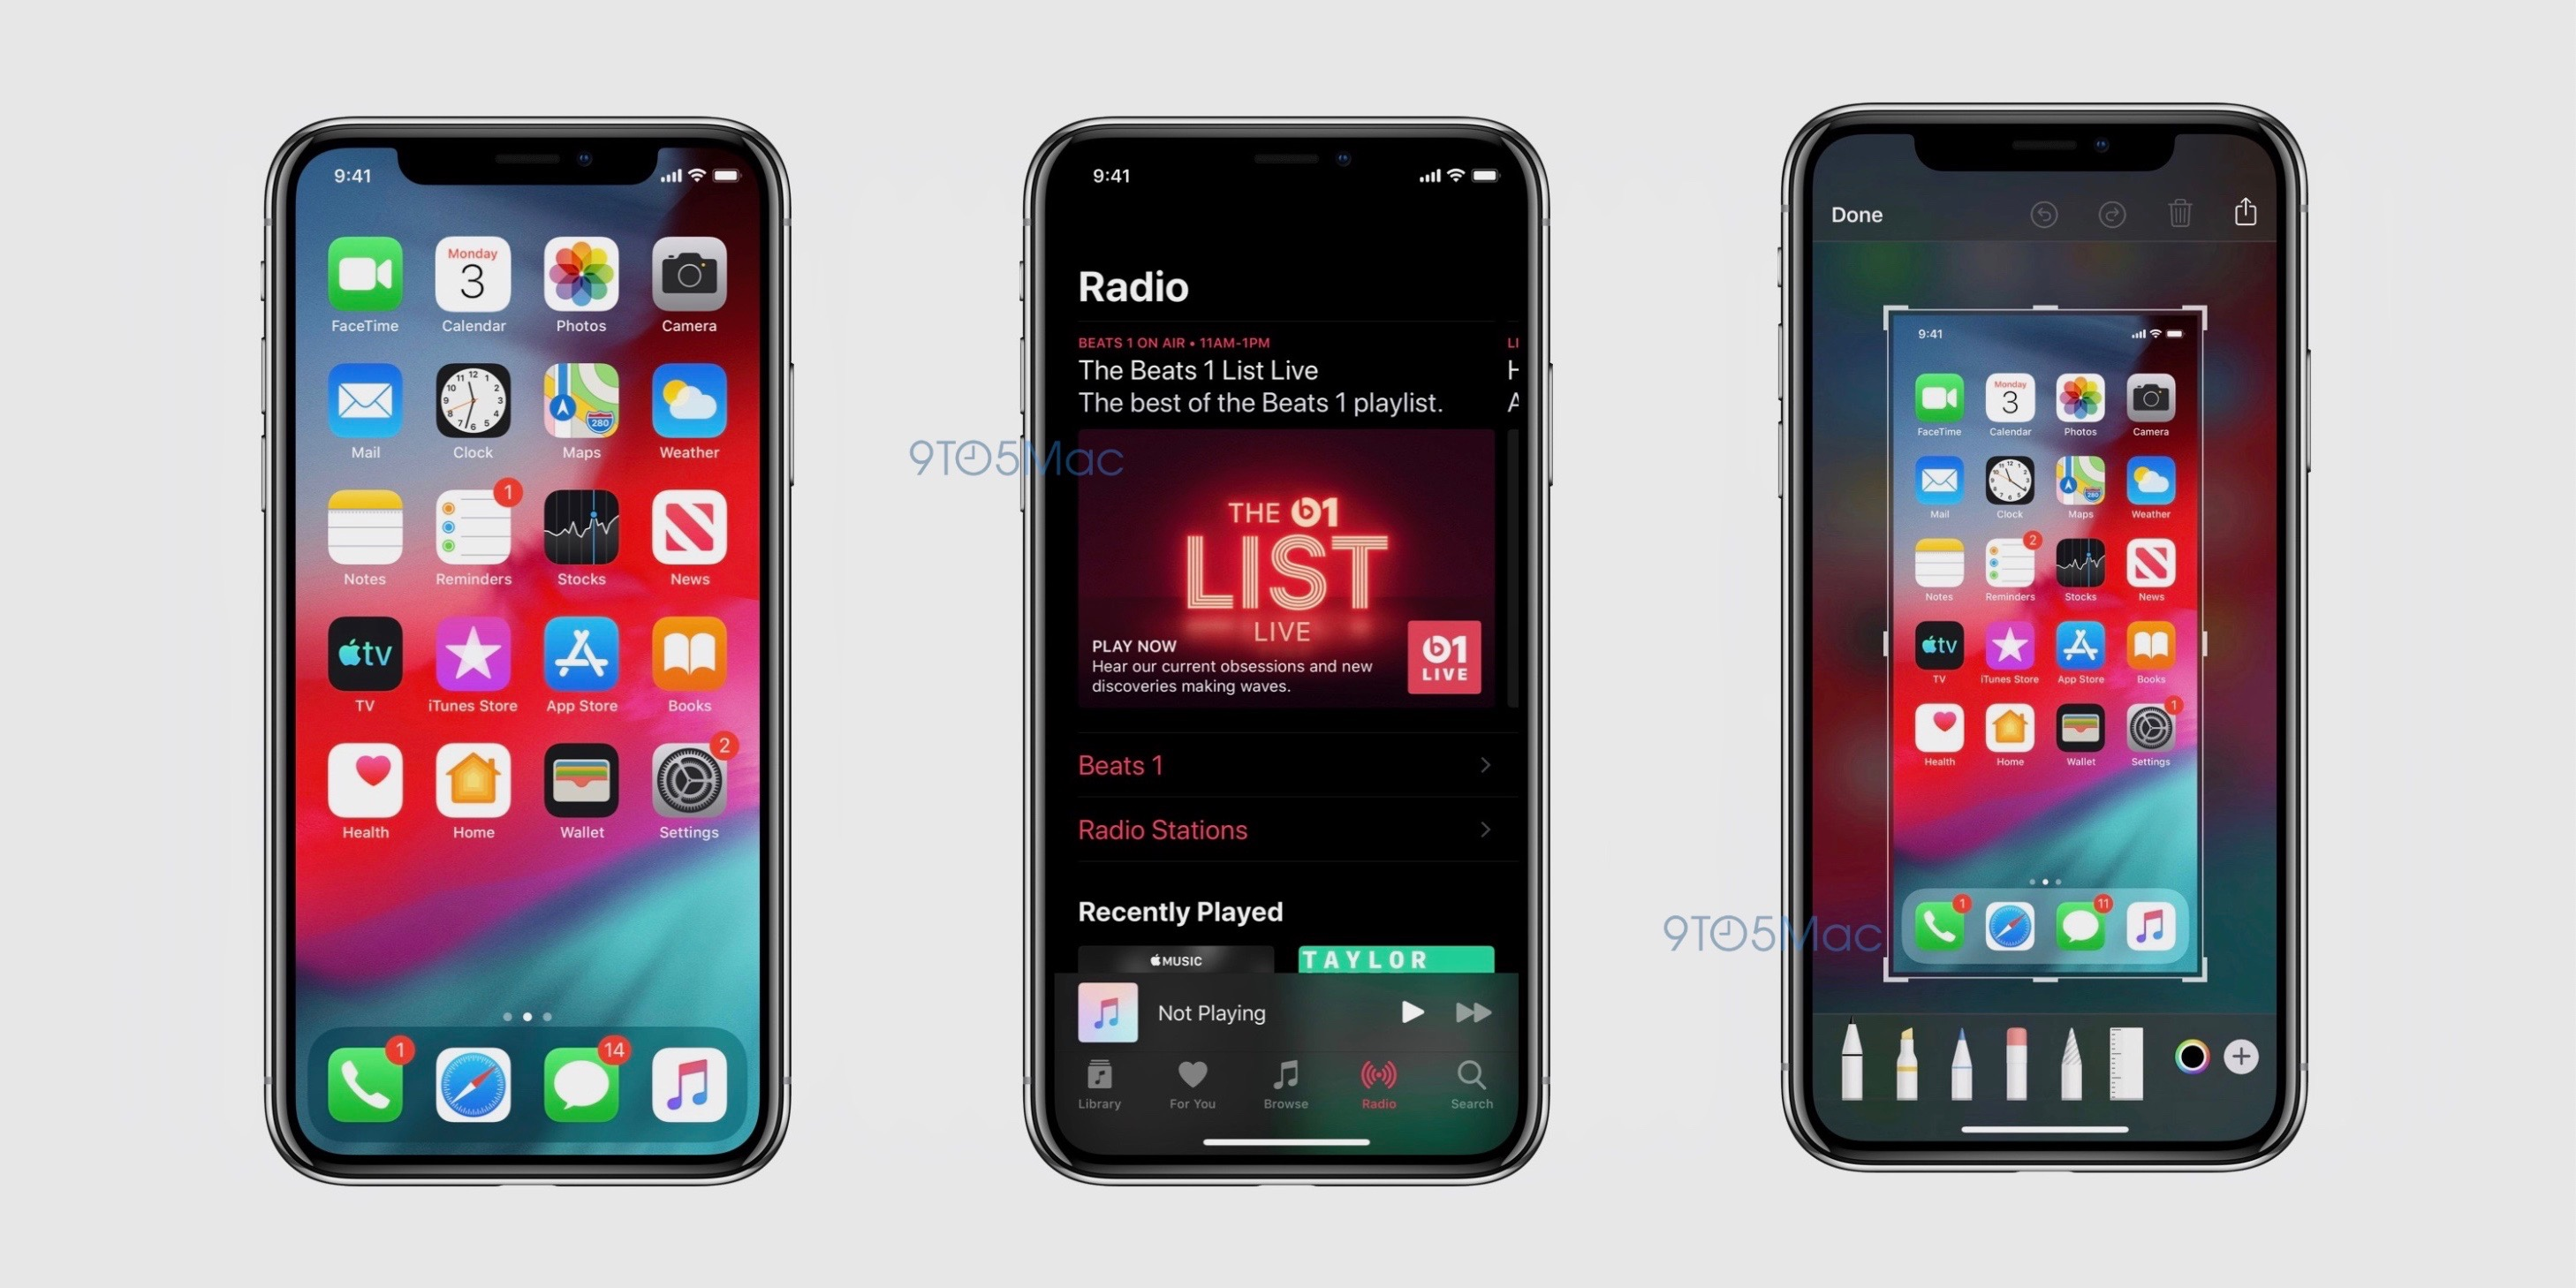 Screenshots of iOS 13's Dark Mode, according to 9to5Mac.